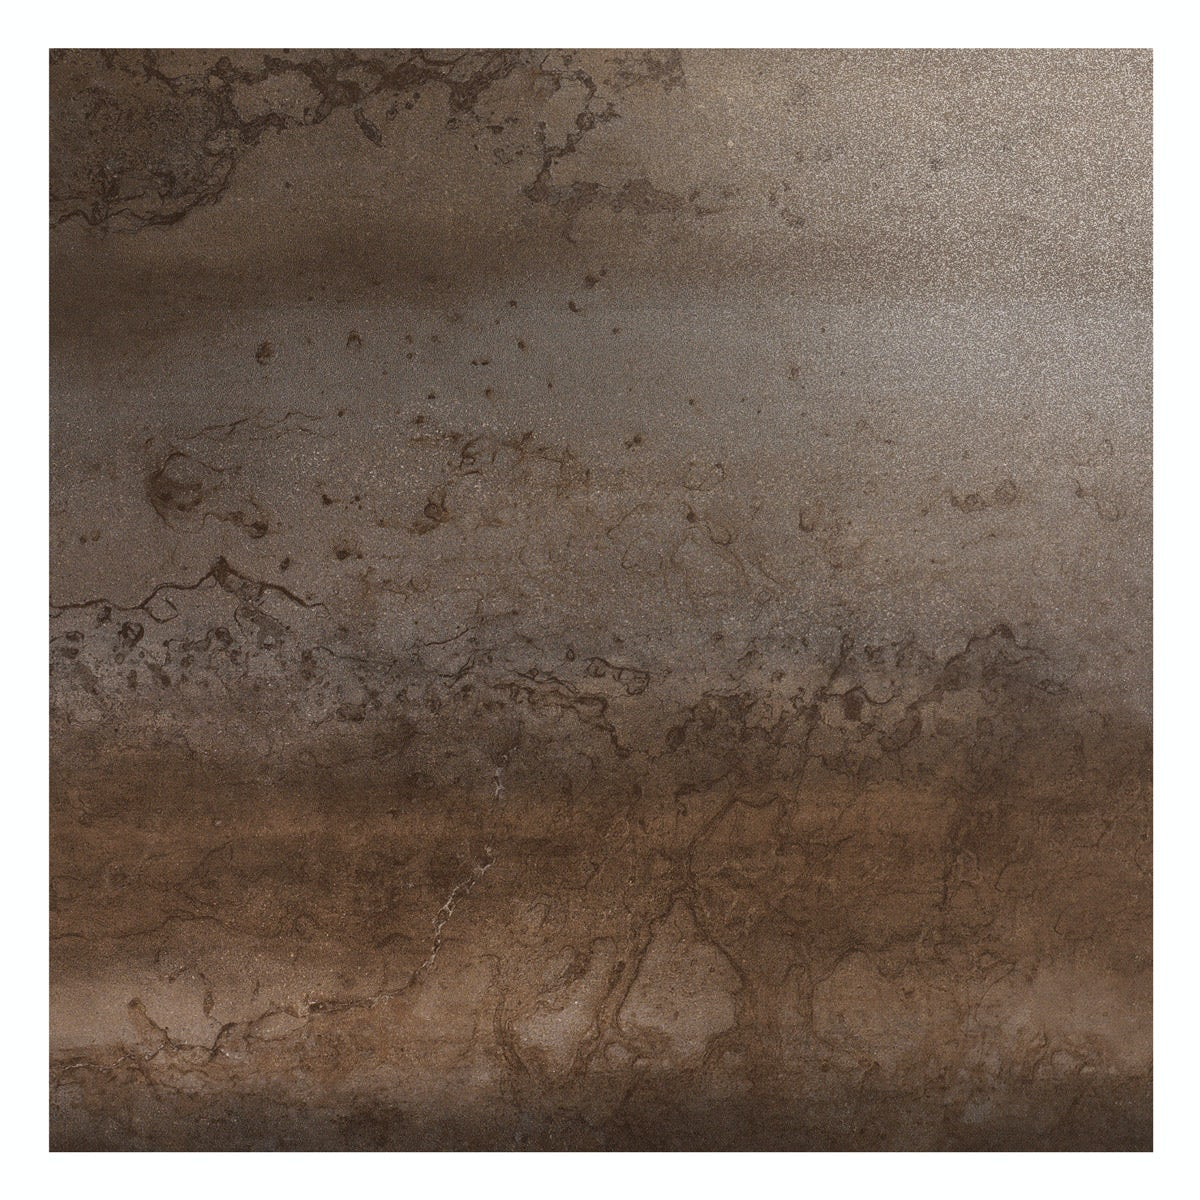 cosmic copper effect lappato textured wall and floor tile 600mm x 600mm